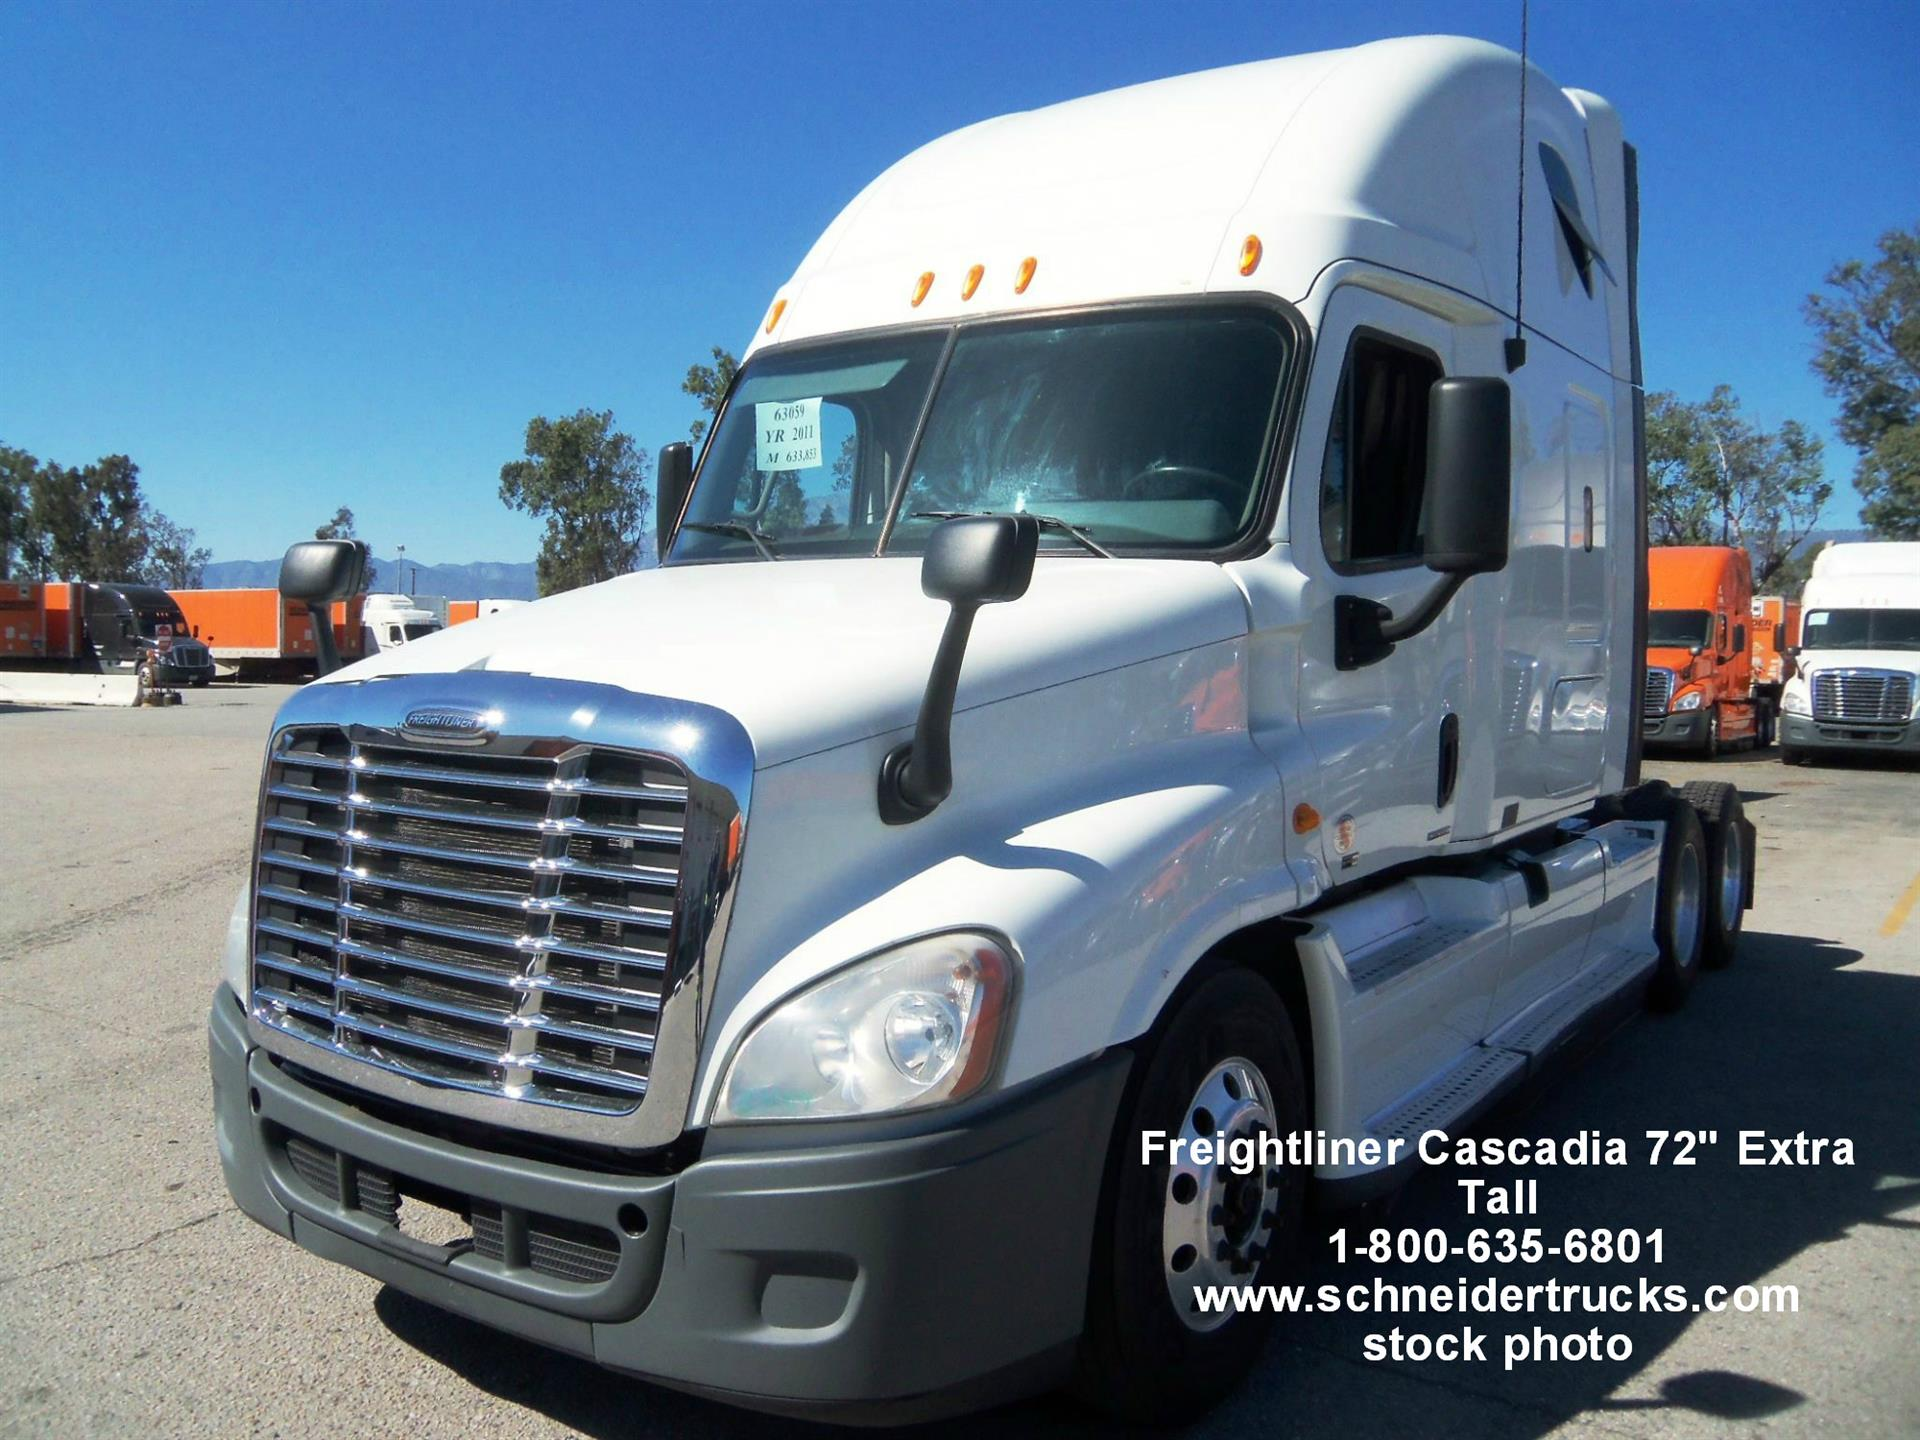 USED 2015 FREIGHTLINER CASCADIA SLEEPER TRUCK #131771